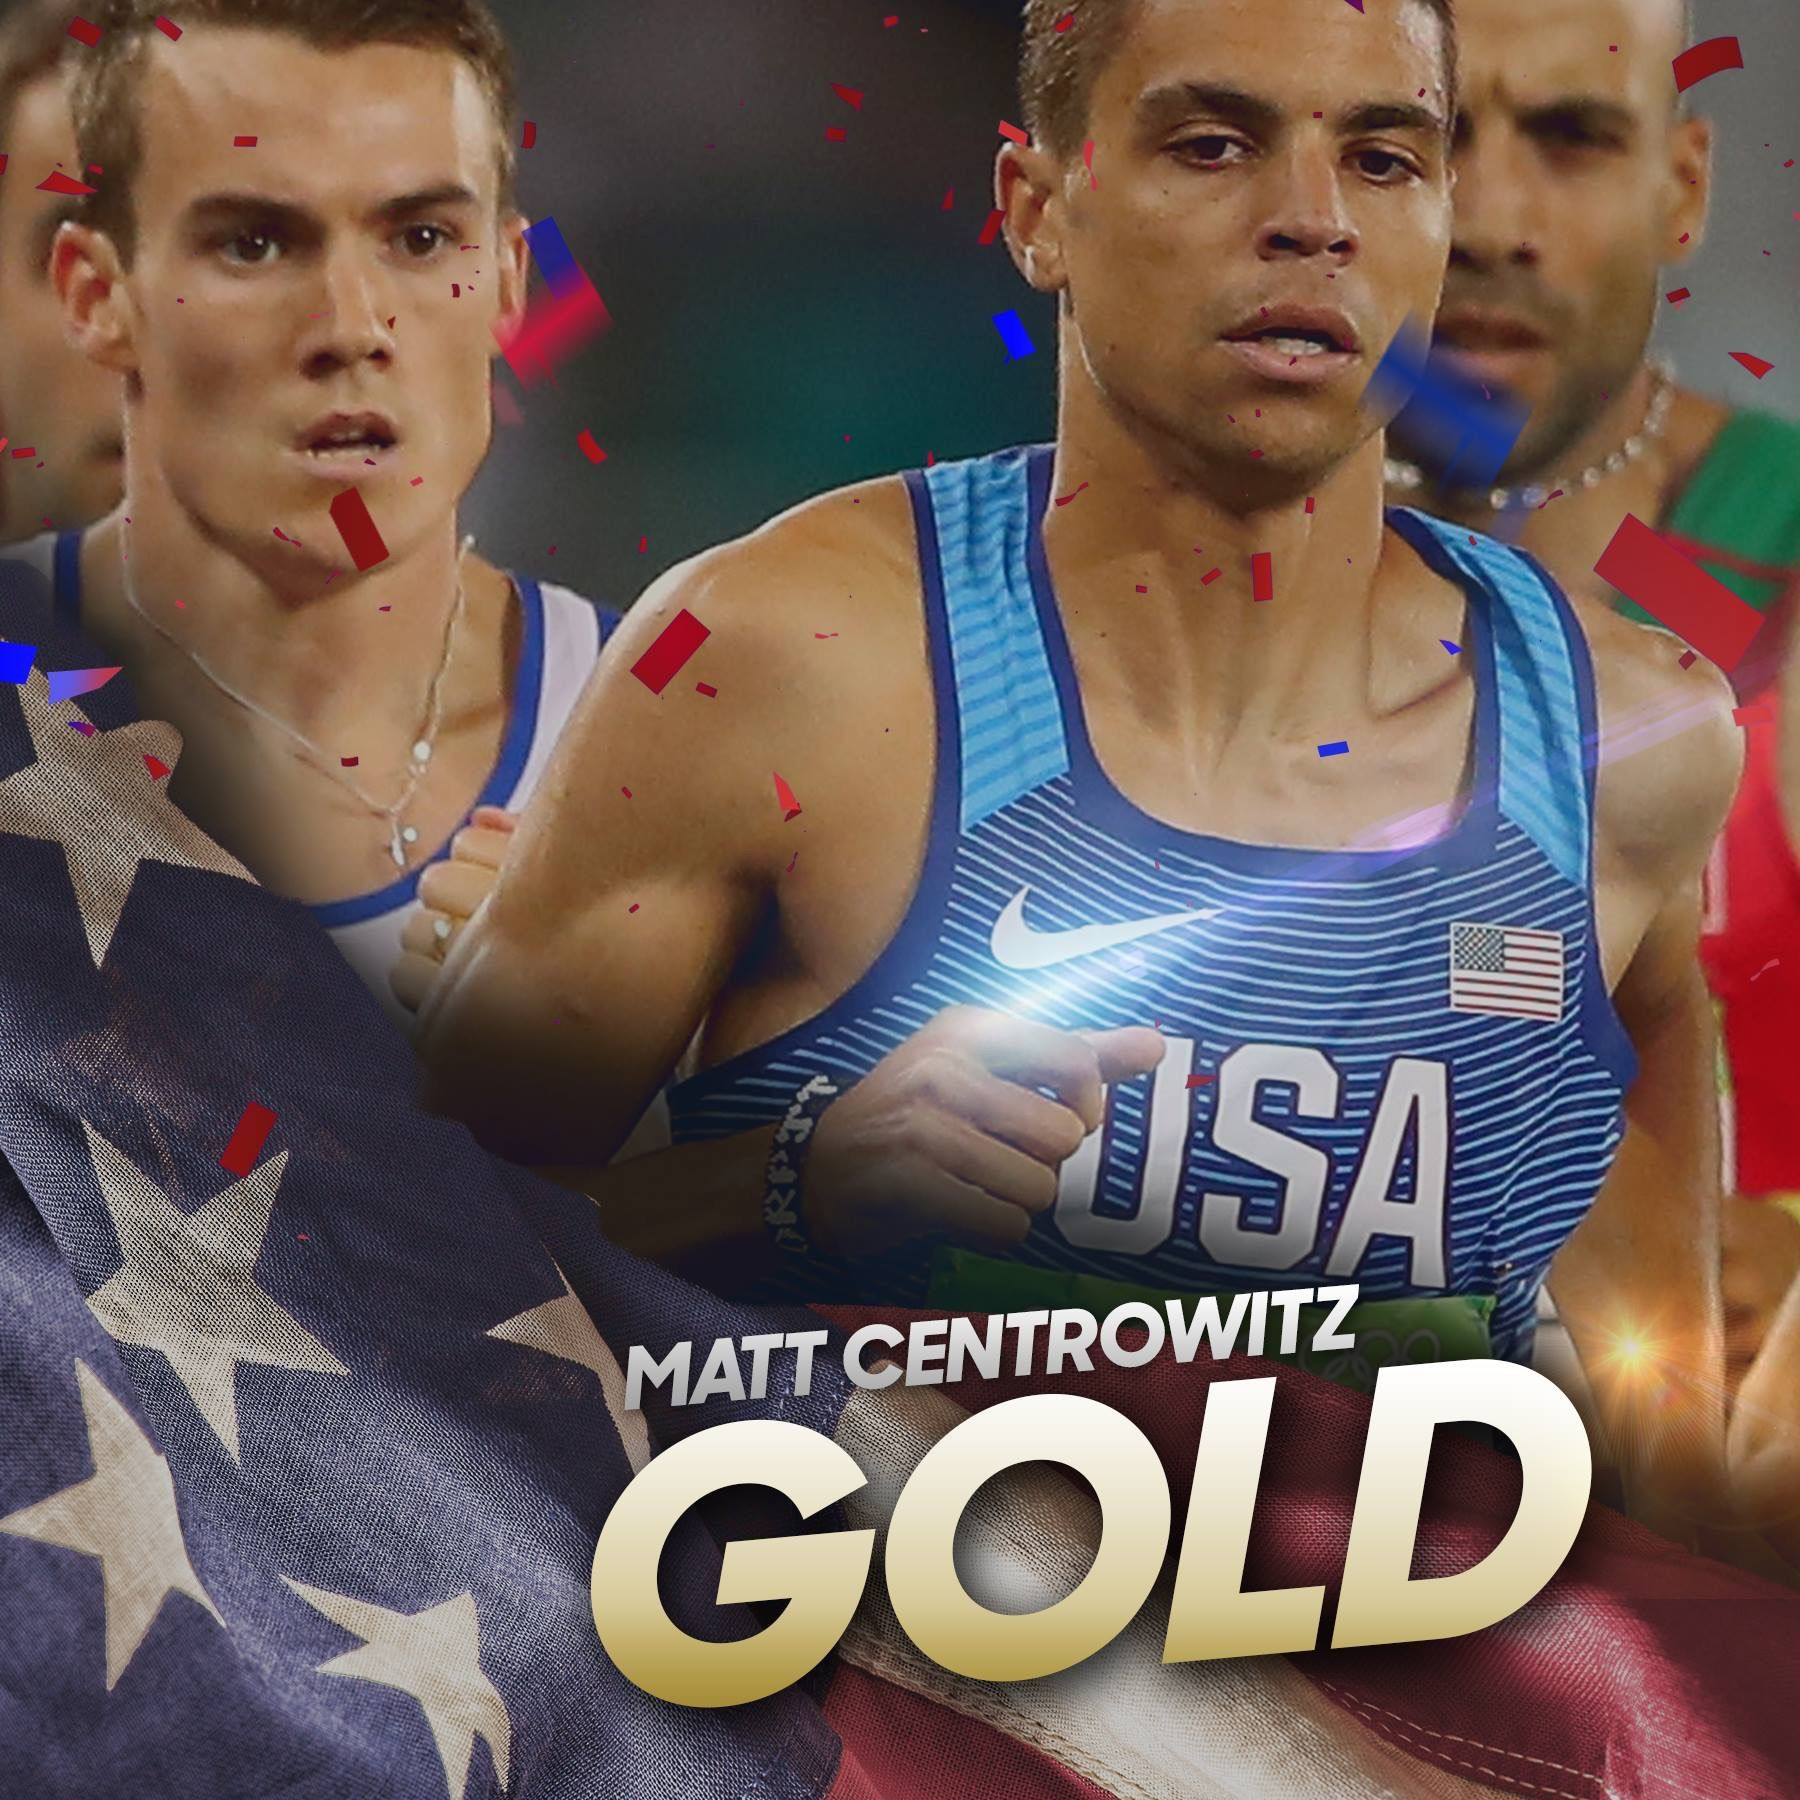 Matt Centrowitz WINS the #GoldMatt Centrowitz is the 1st American to win the 1500m since 1908!  Medal in the Men's 1500m! #Rio2016